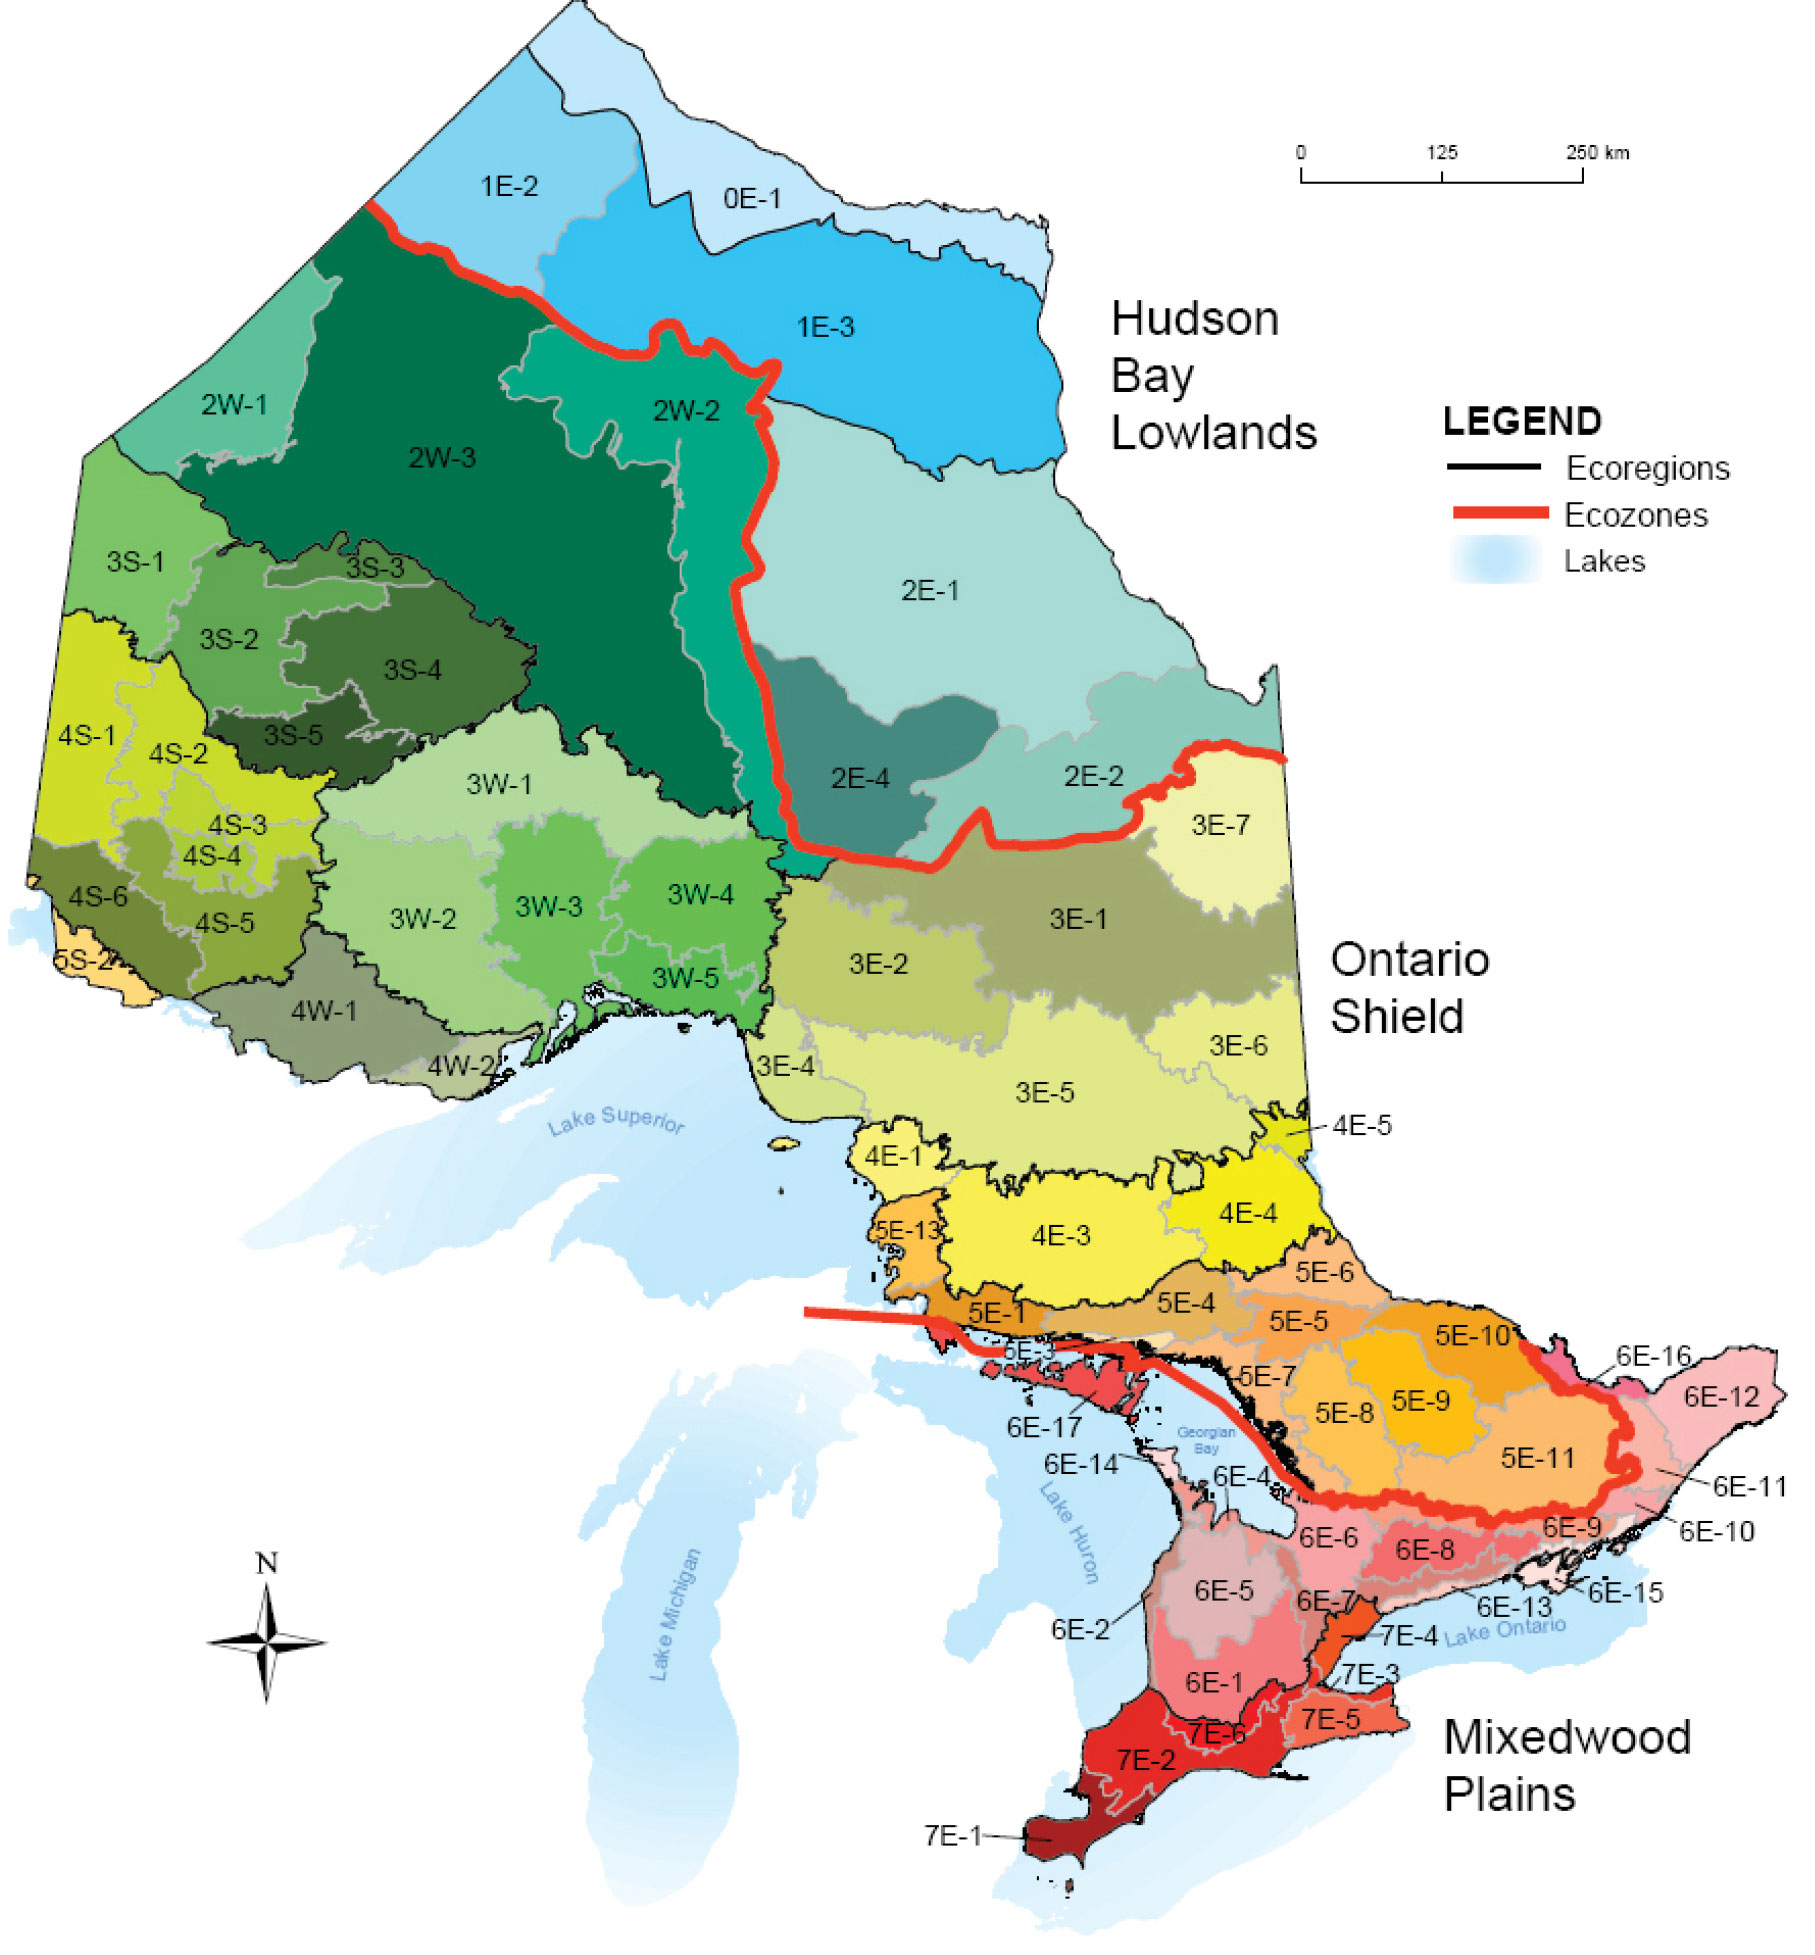 Ontario's land is classified into ecozones, ecoregions, and ecodistricts, which are each based on different features.